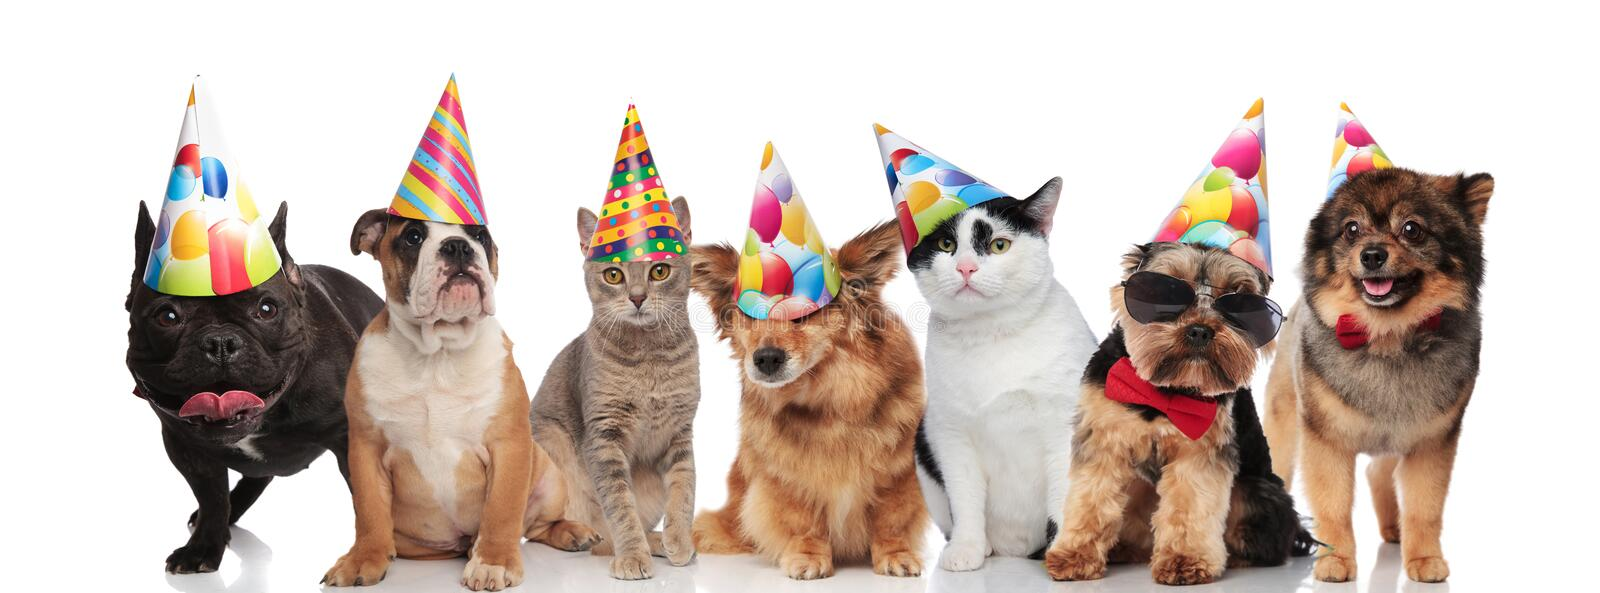 Team of seven happy pets wearing colorful birthday hats royalty free stock images